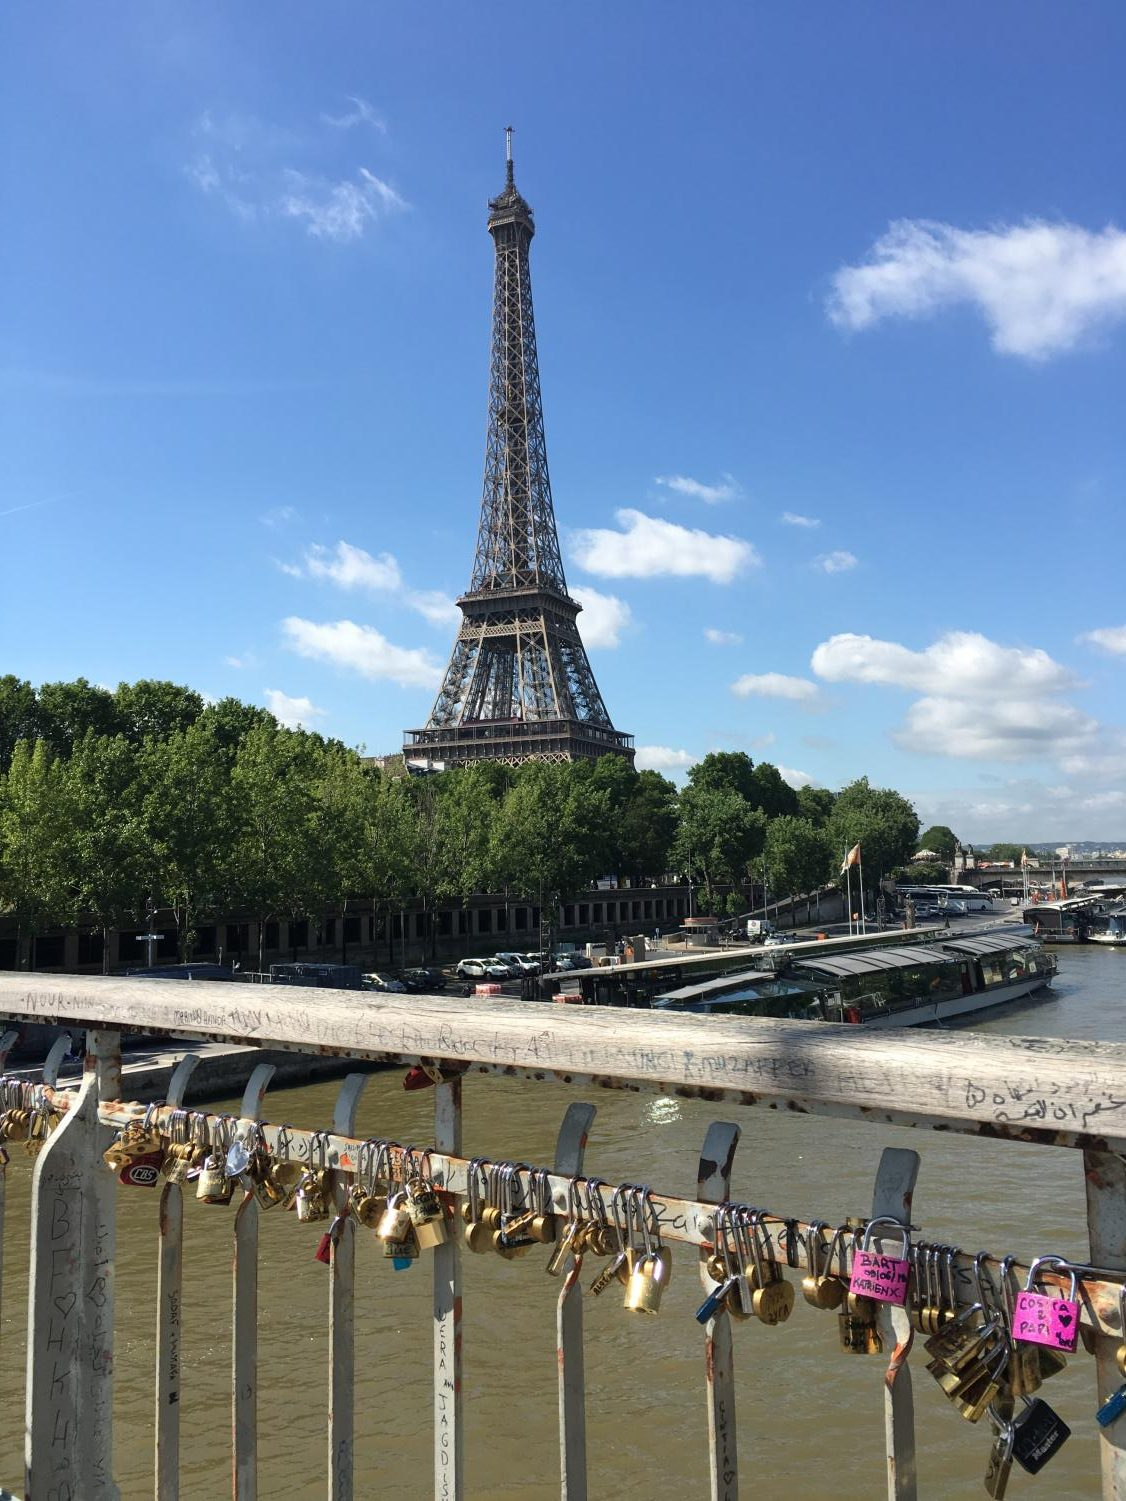 When+the+Eiffel+Tower+was+first+built%2C+patrons+of+the+city+criticized+its+unique+structure.+Over+time%2C+though%2C+it+has+been+able+to+bring+millions+of+tourists.+